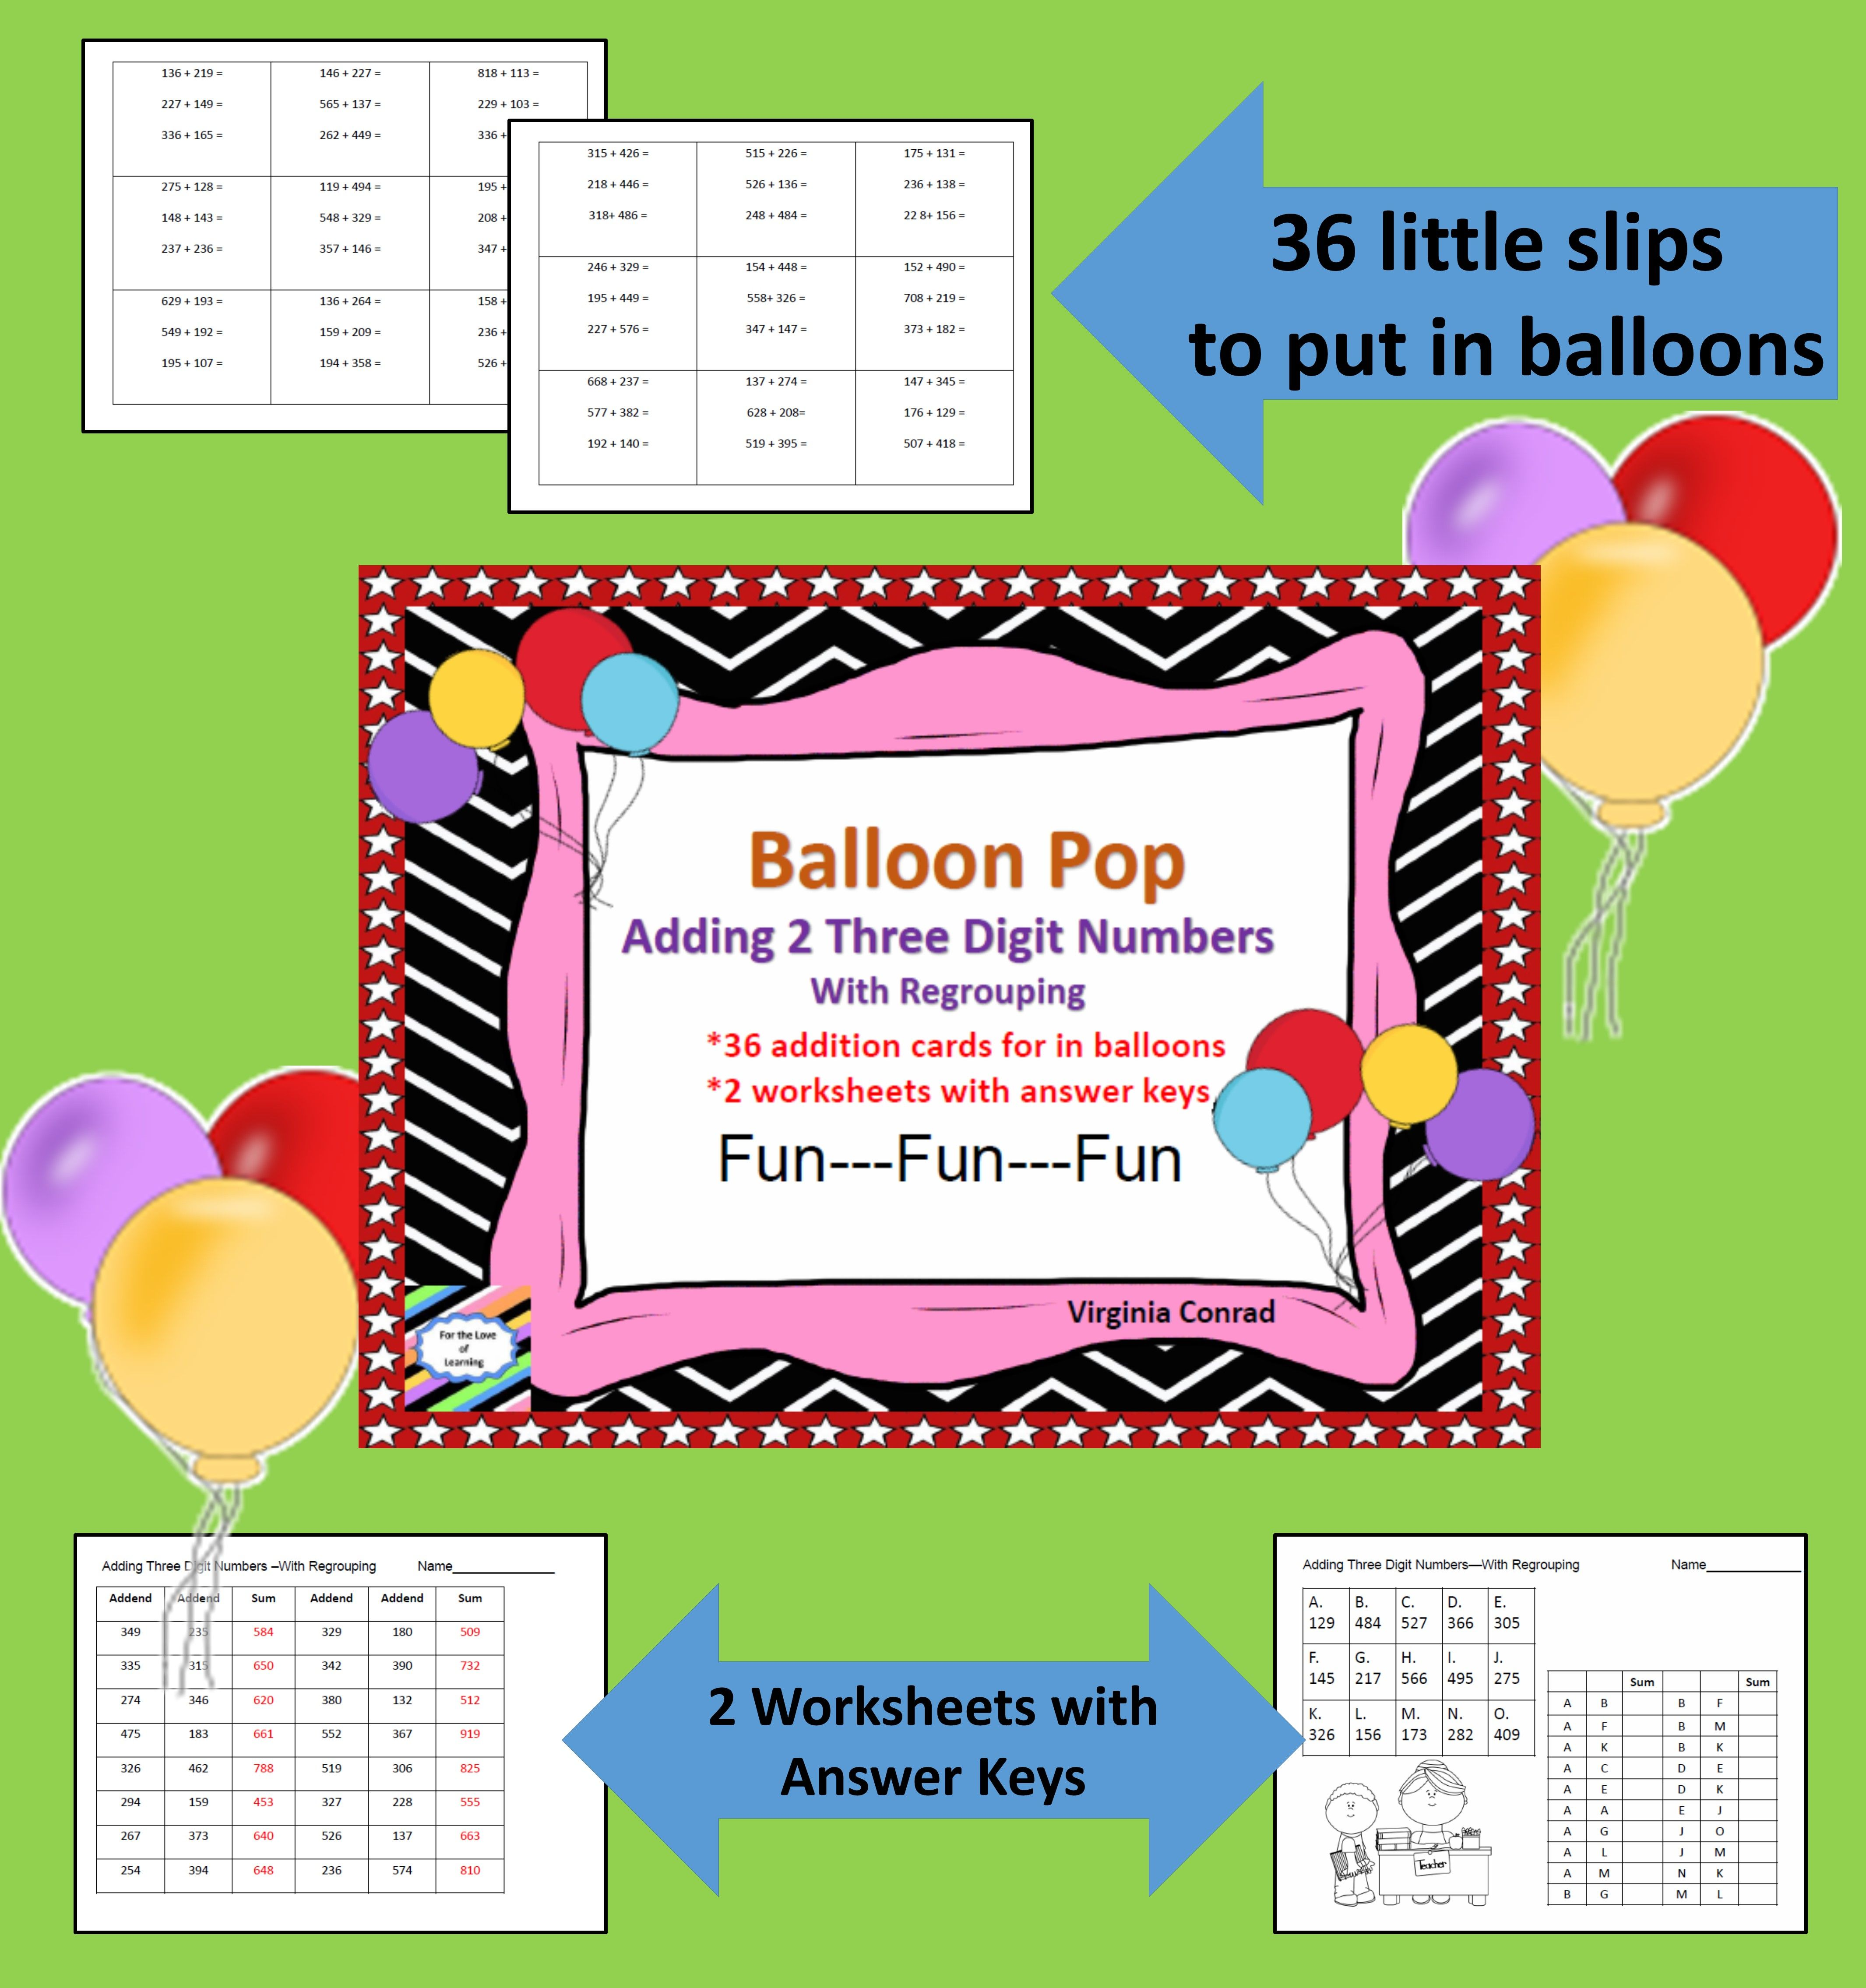 Adding 2 Three Digit Numbers With Regrouping Balloon Pop